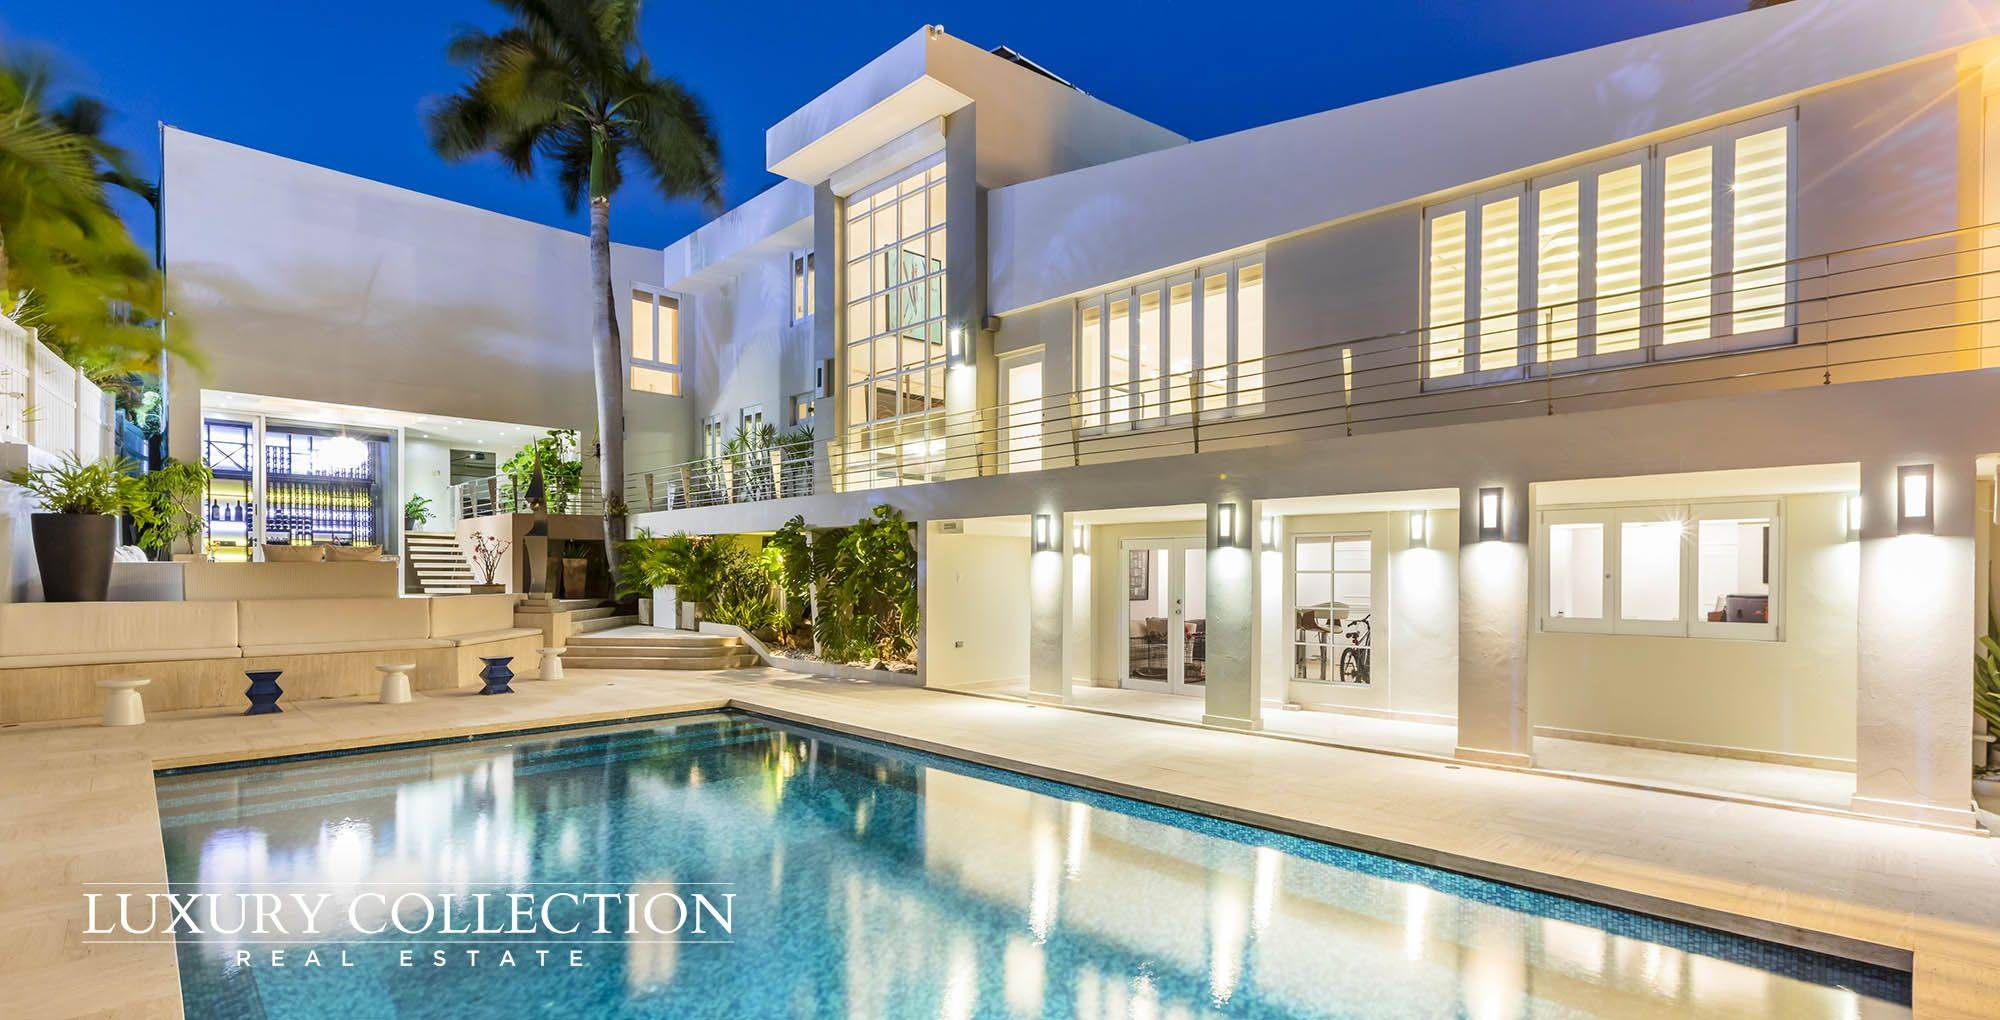 Home - LUXURY COLLECTION REAL ESTATE